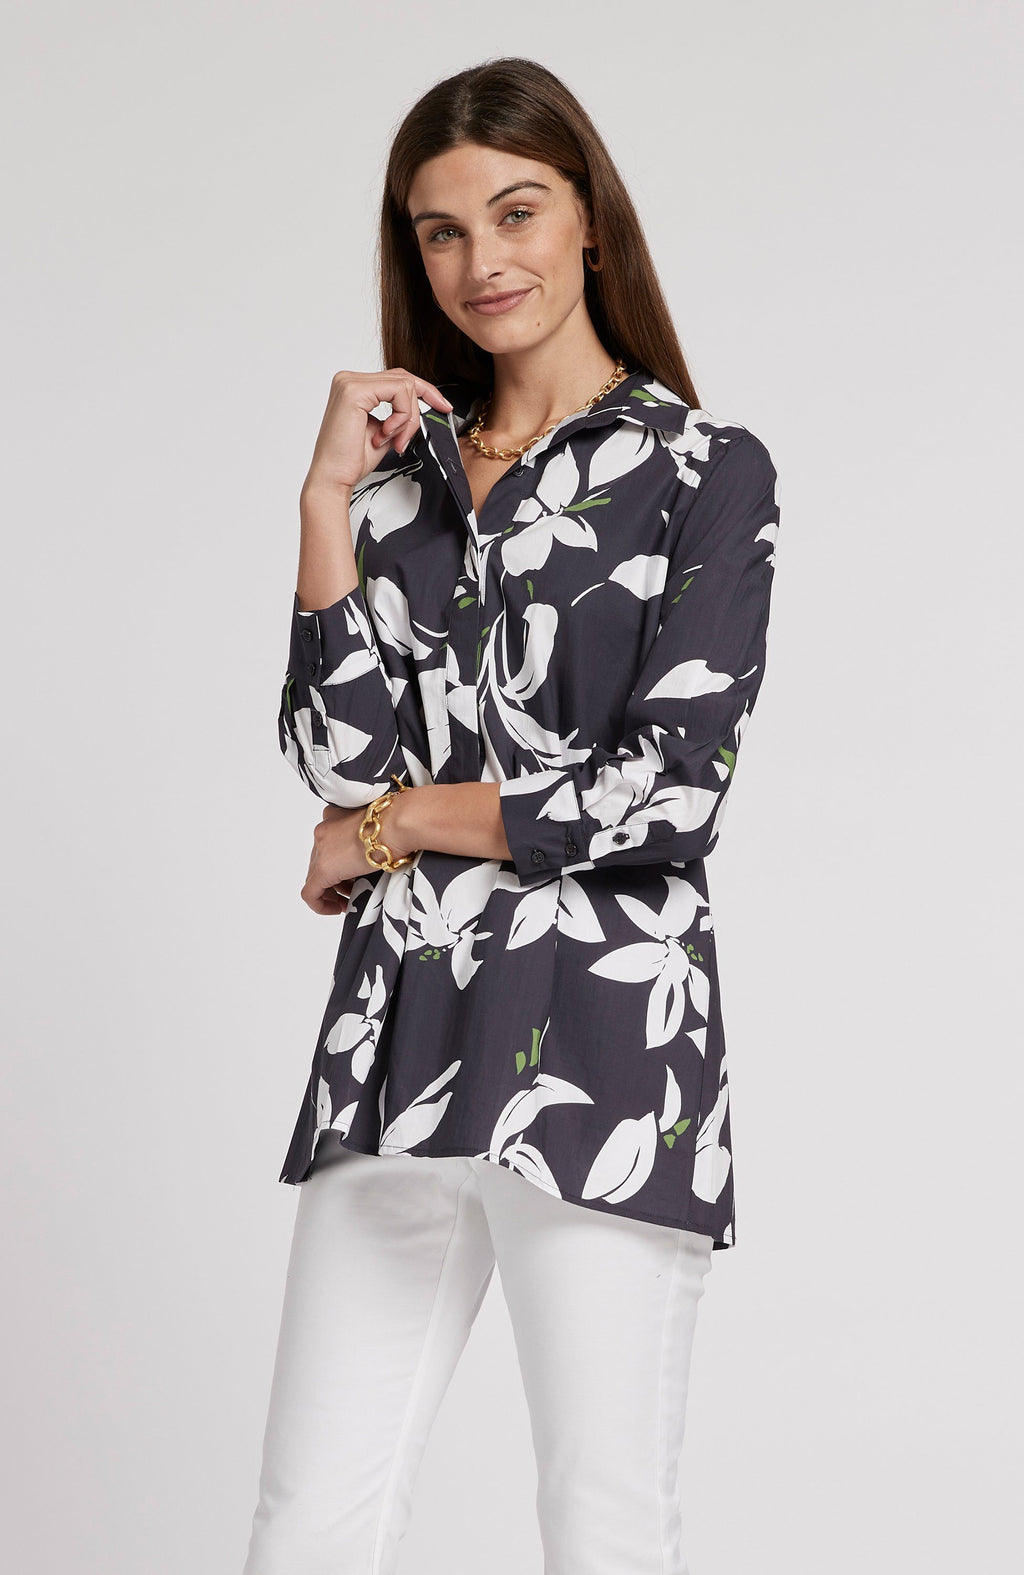 MADISON POPLIN CROCUS TUNIC - MULTI CROCUS TylerBoe XS MULTI CROCUS